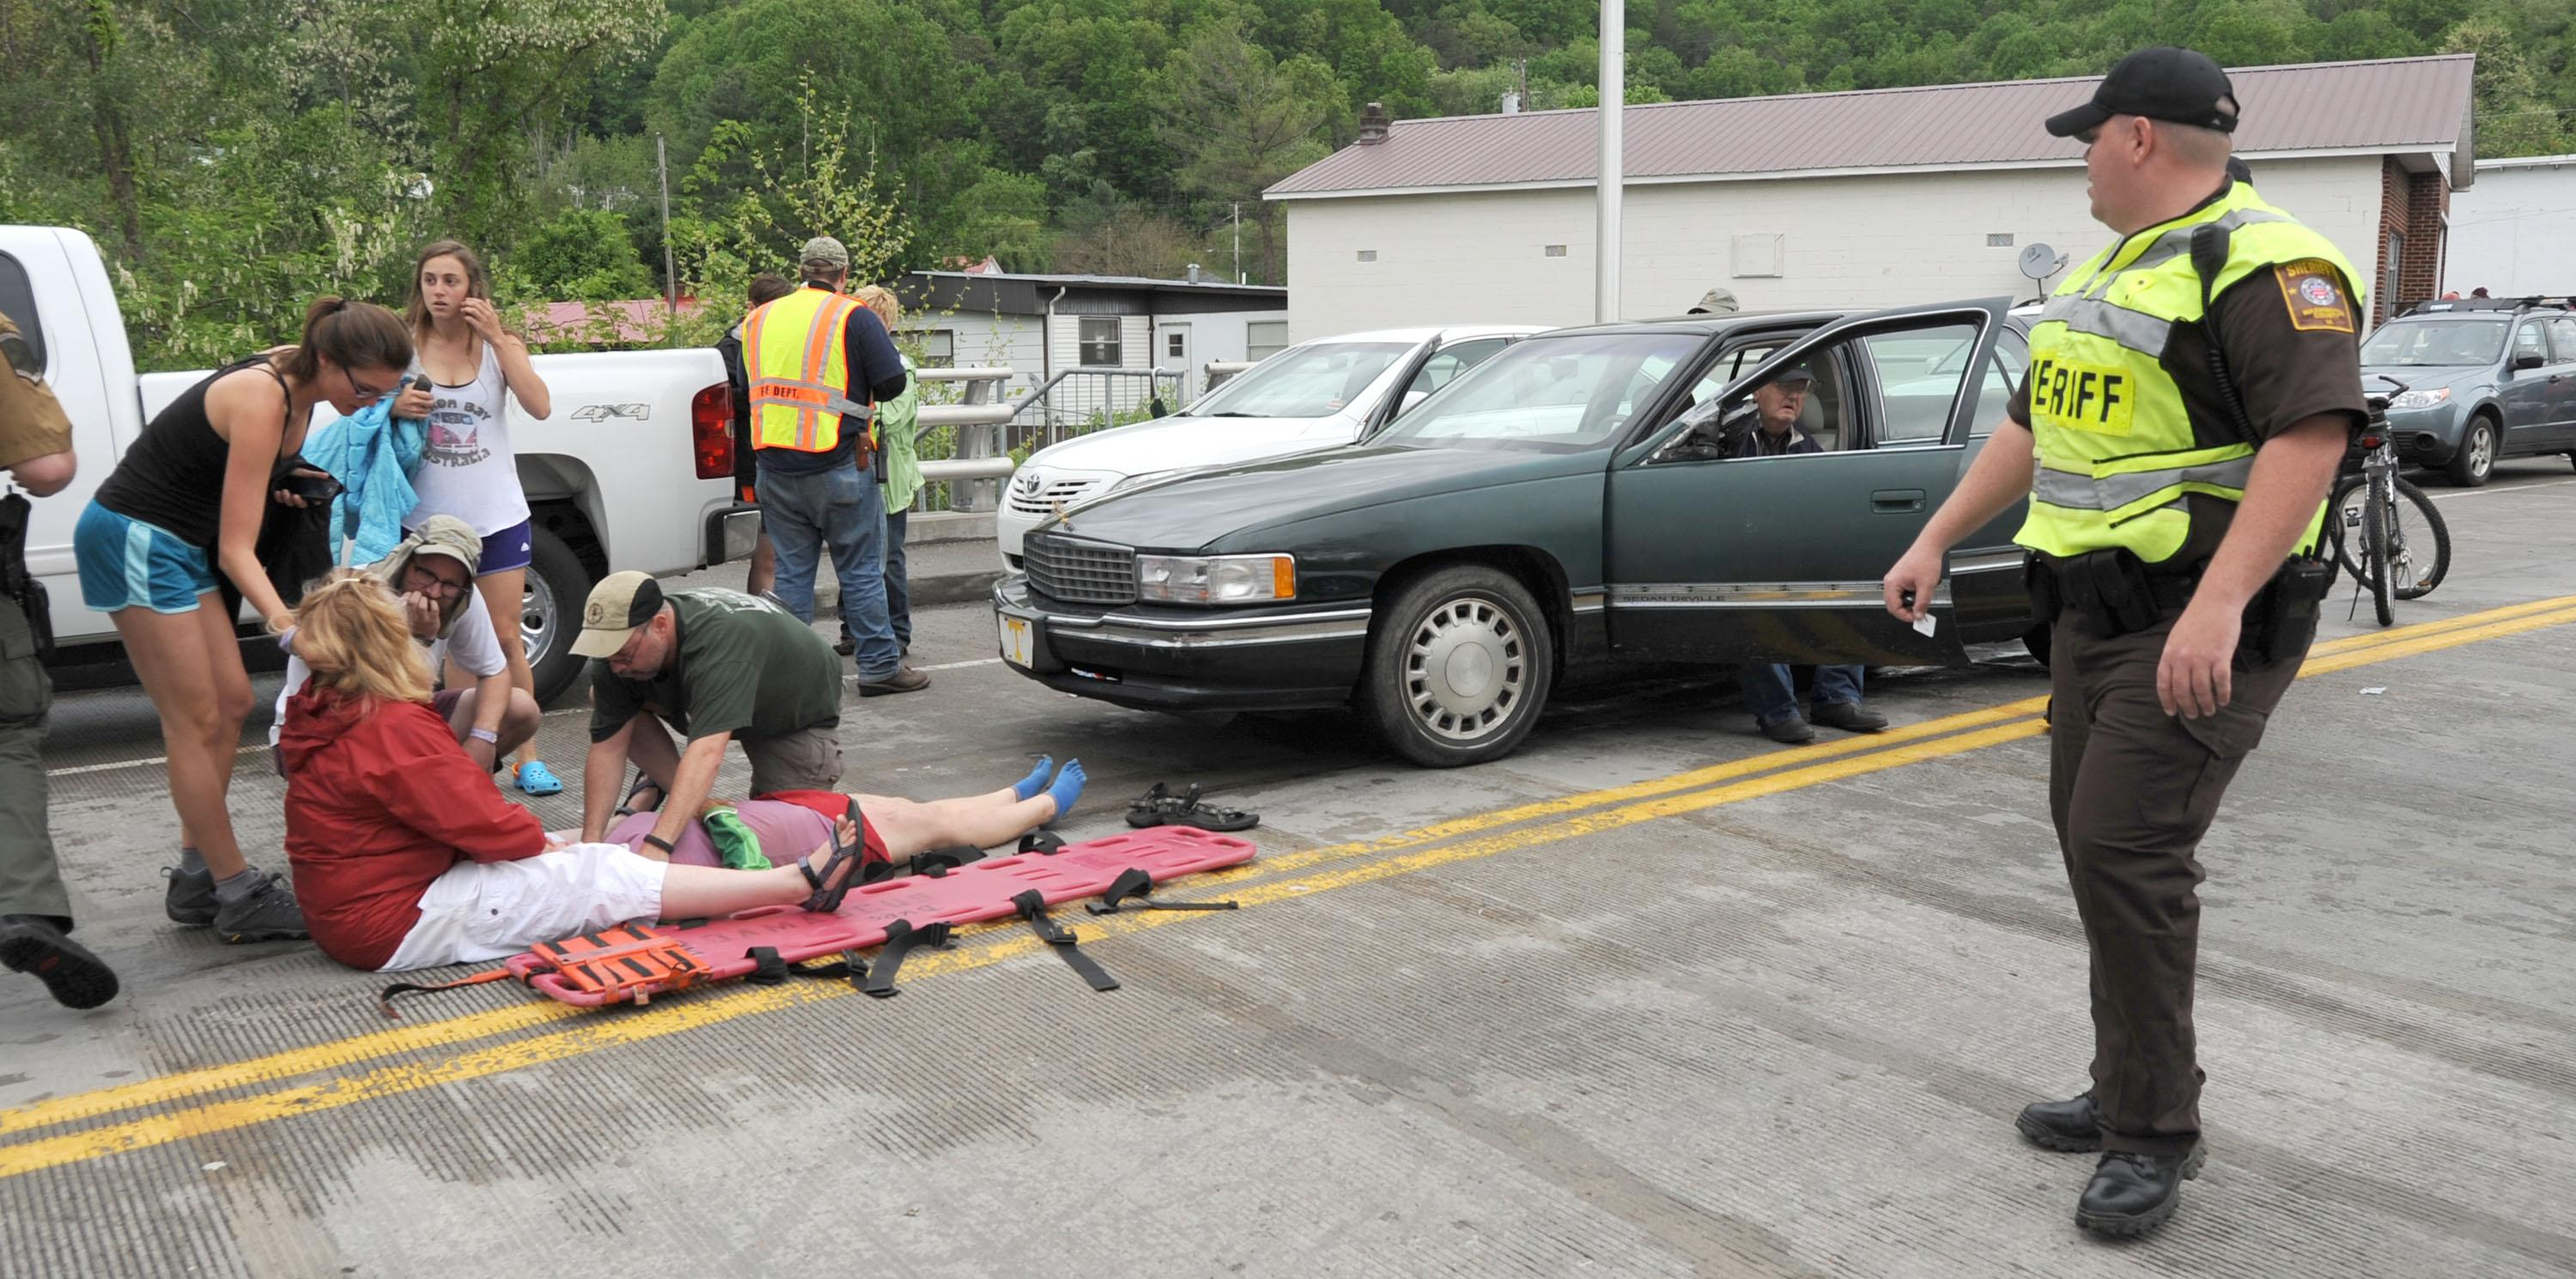 Emergency personnel respond to one of the people hit by a car, at right, during the beginning of the Hikers Parade at the Trail Days festival in Damascus, Va., Saturday, May 18, 2013. Witnesses said the car drove into a crowd at the parade and hurt several people, but the nature of their injuries wasn't immediately known. (AP Photo/Bristol Herald Courier, Earl Neikirk)